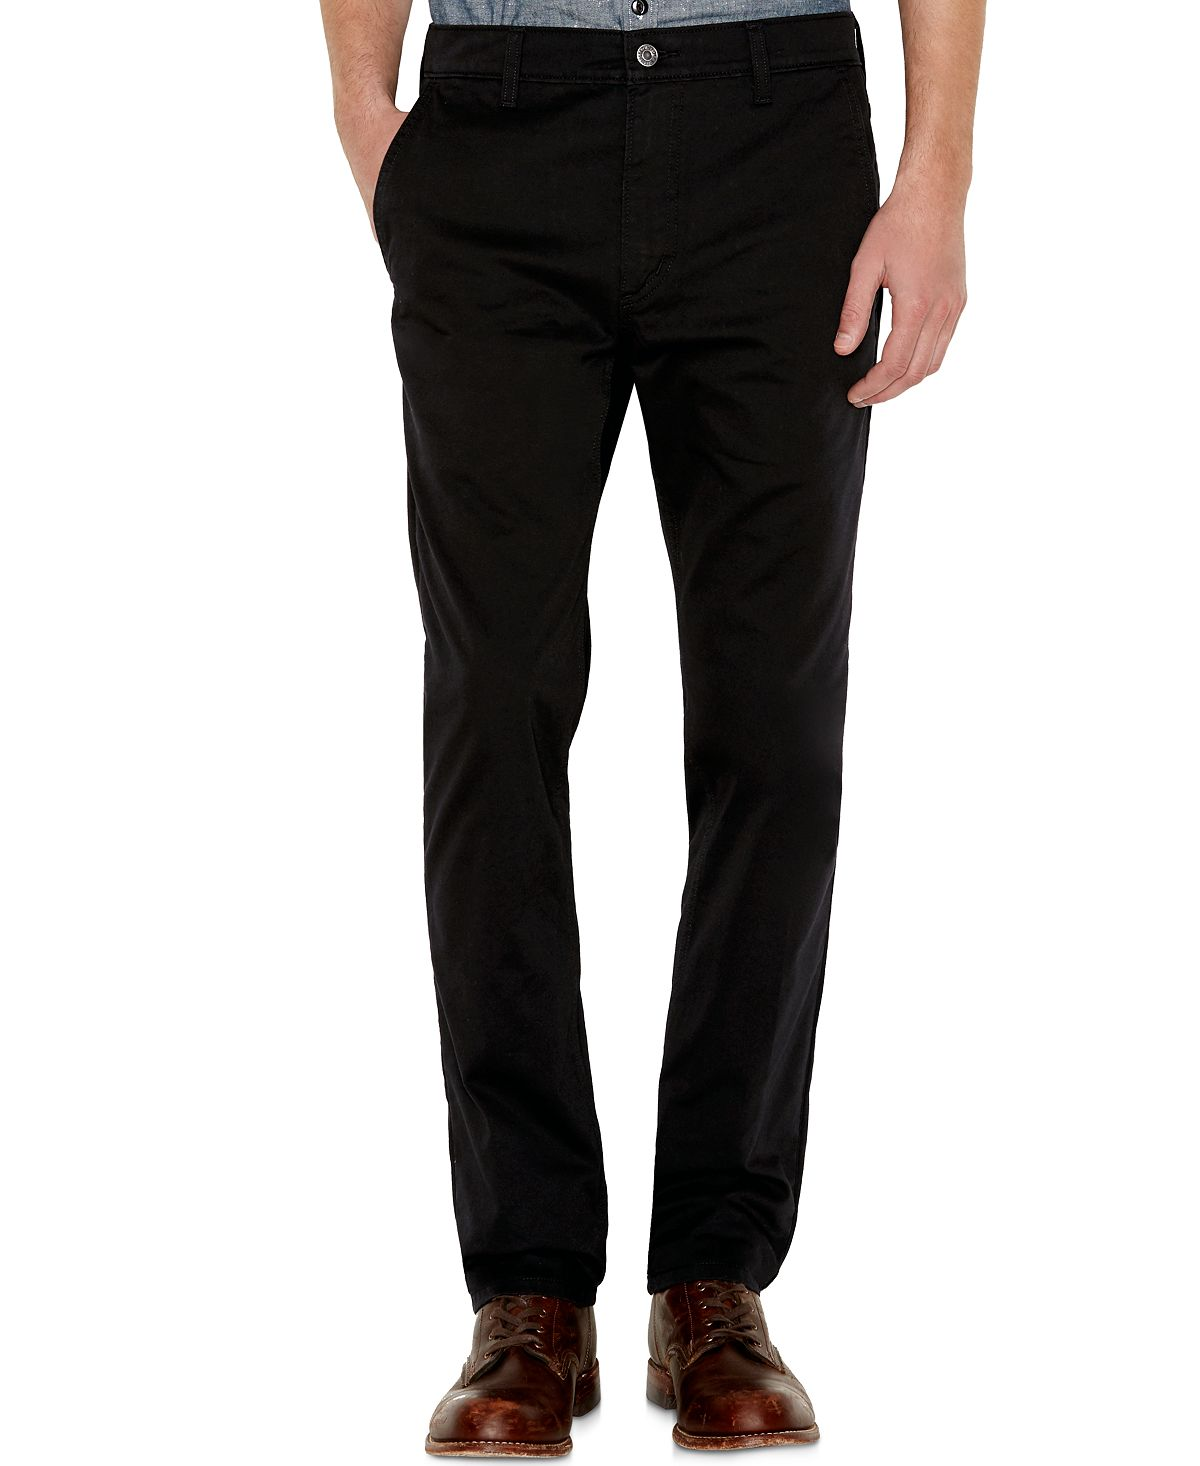 Levi's 511™ Slim Fit Hybrid Trousers Black - Waterless